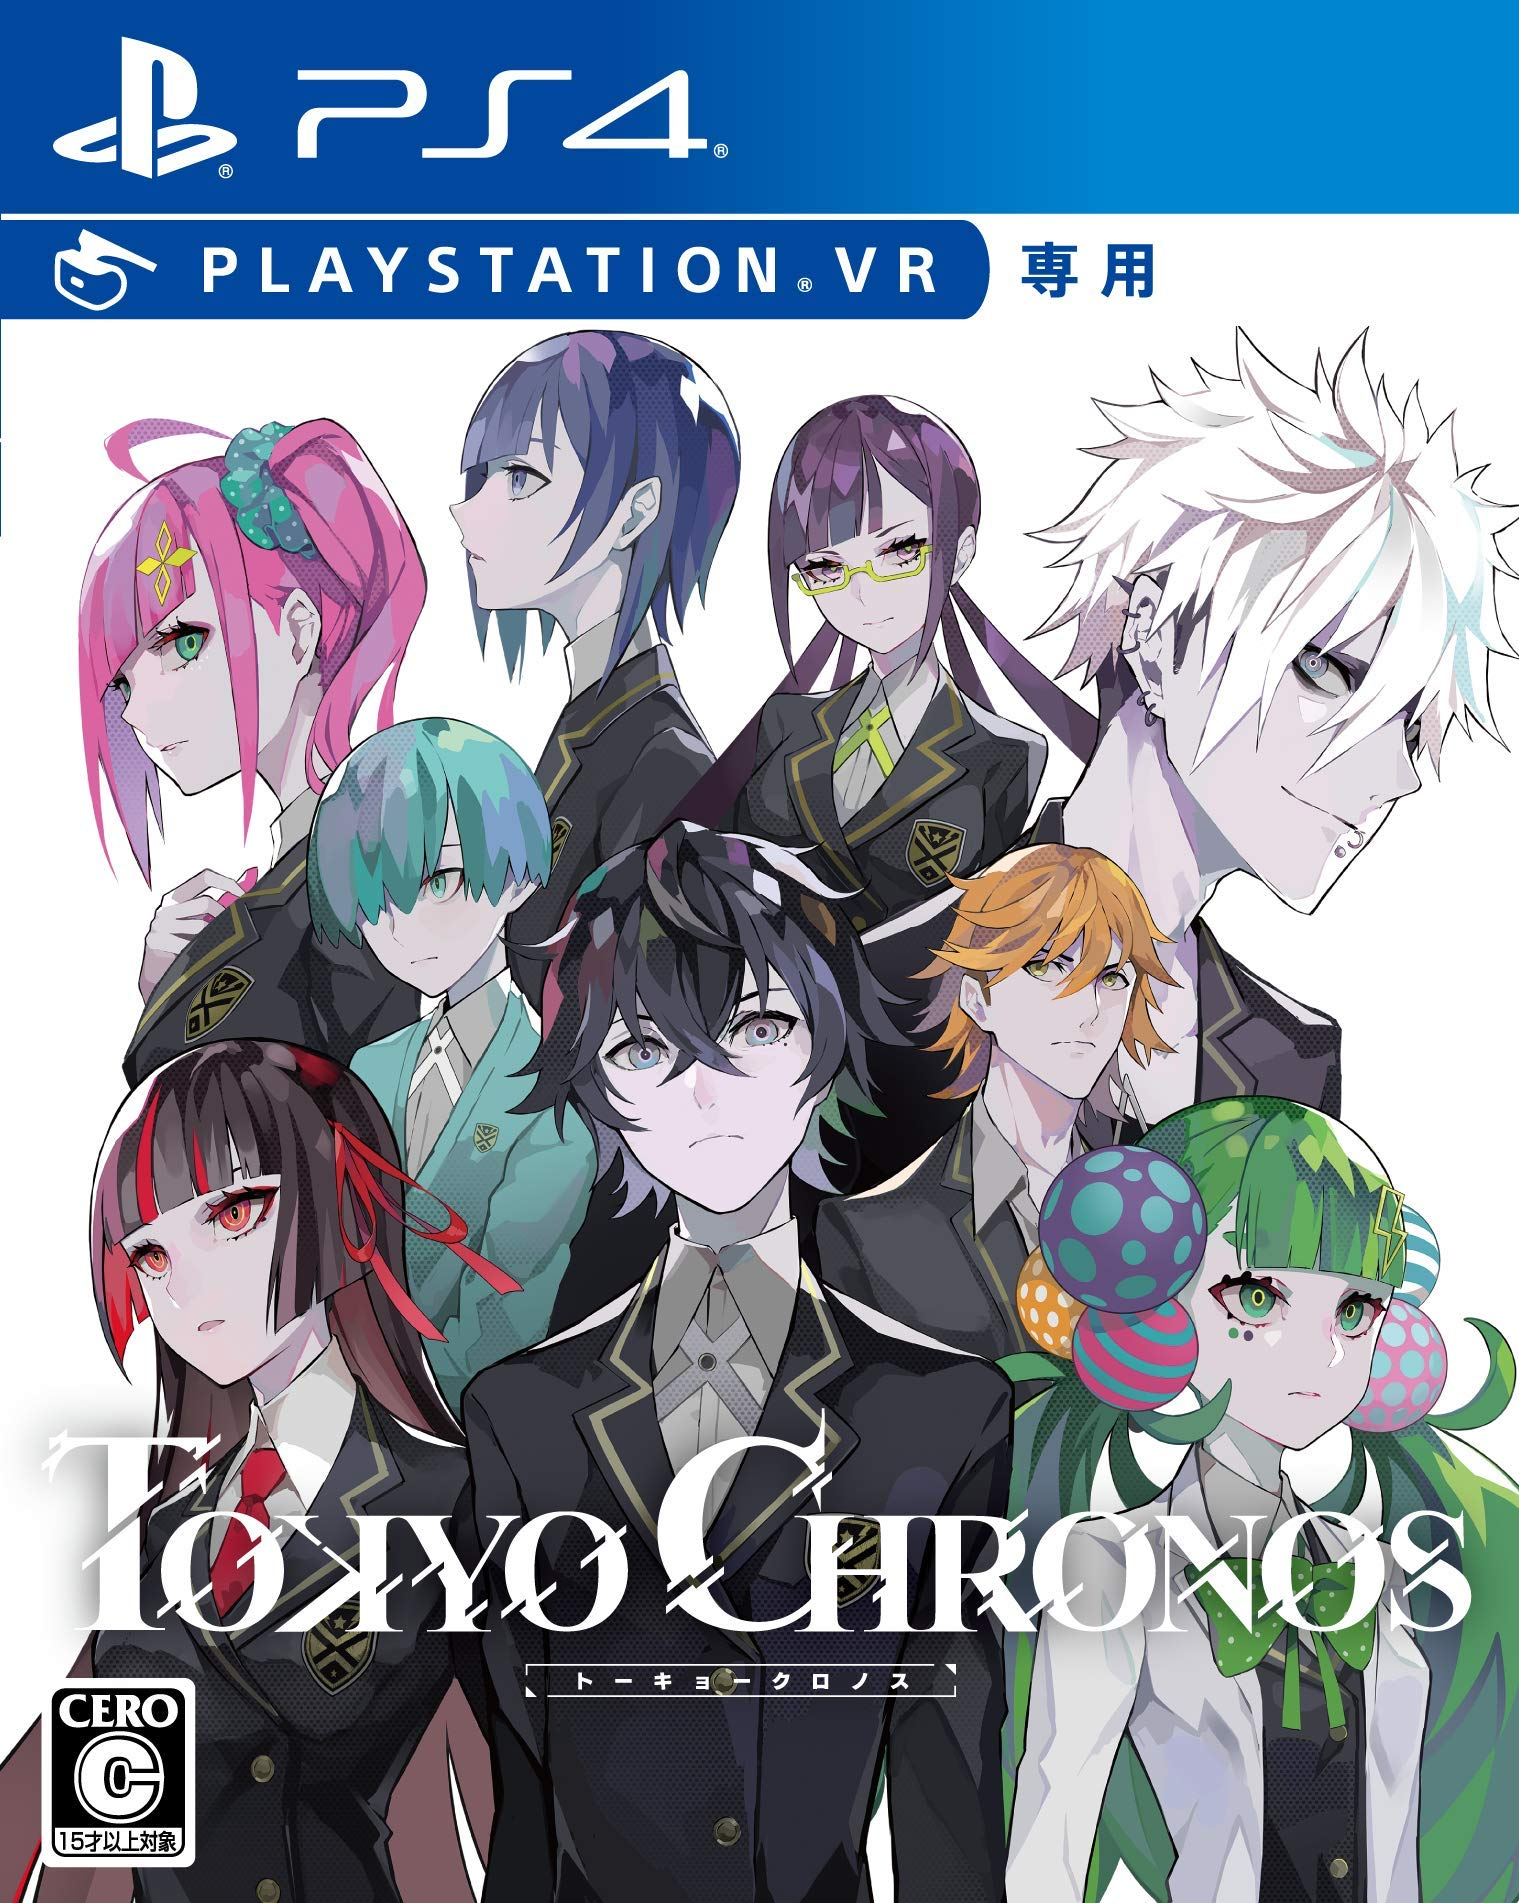 Tokyo Chronos for PlayStation VR Japanese box art, exclusive 'Virtual Figure Mode' announced